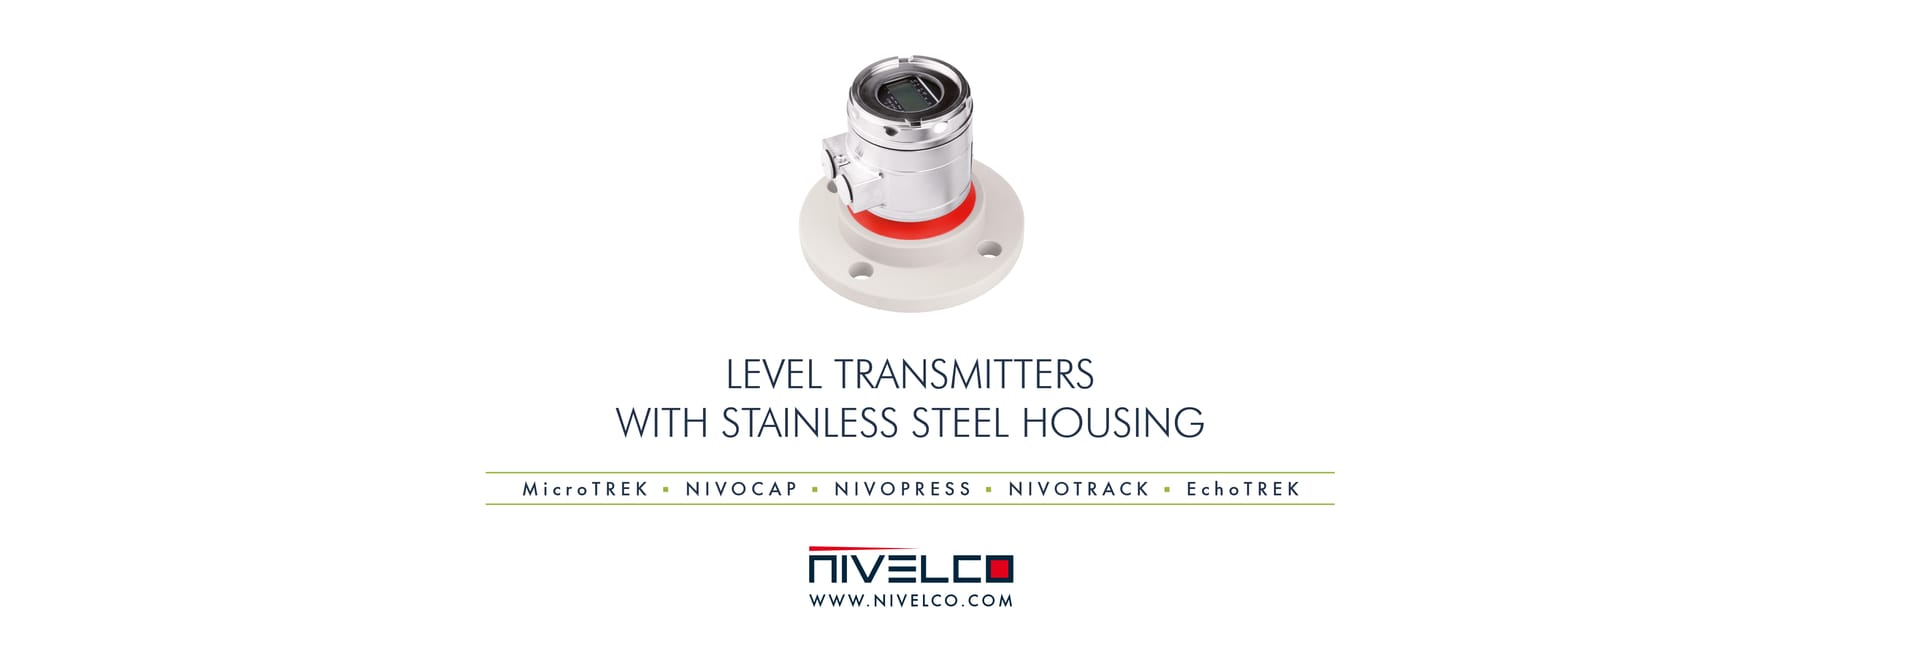 NIVELCO level transmitters with stainless steel housing